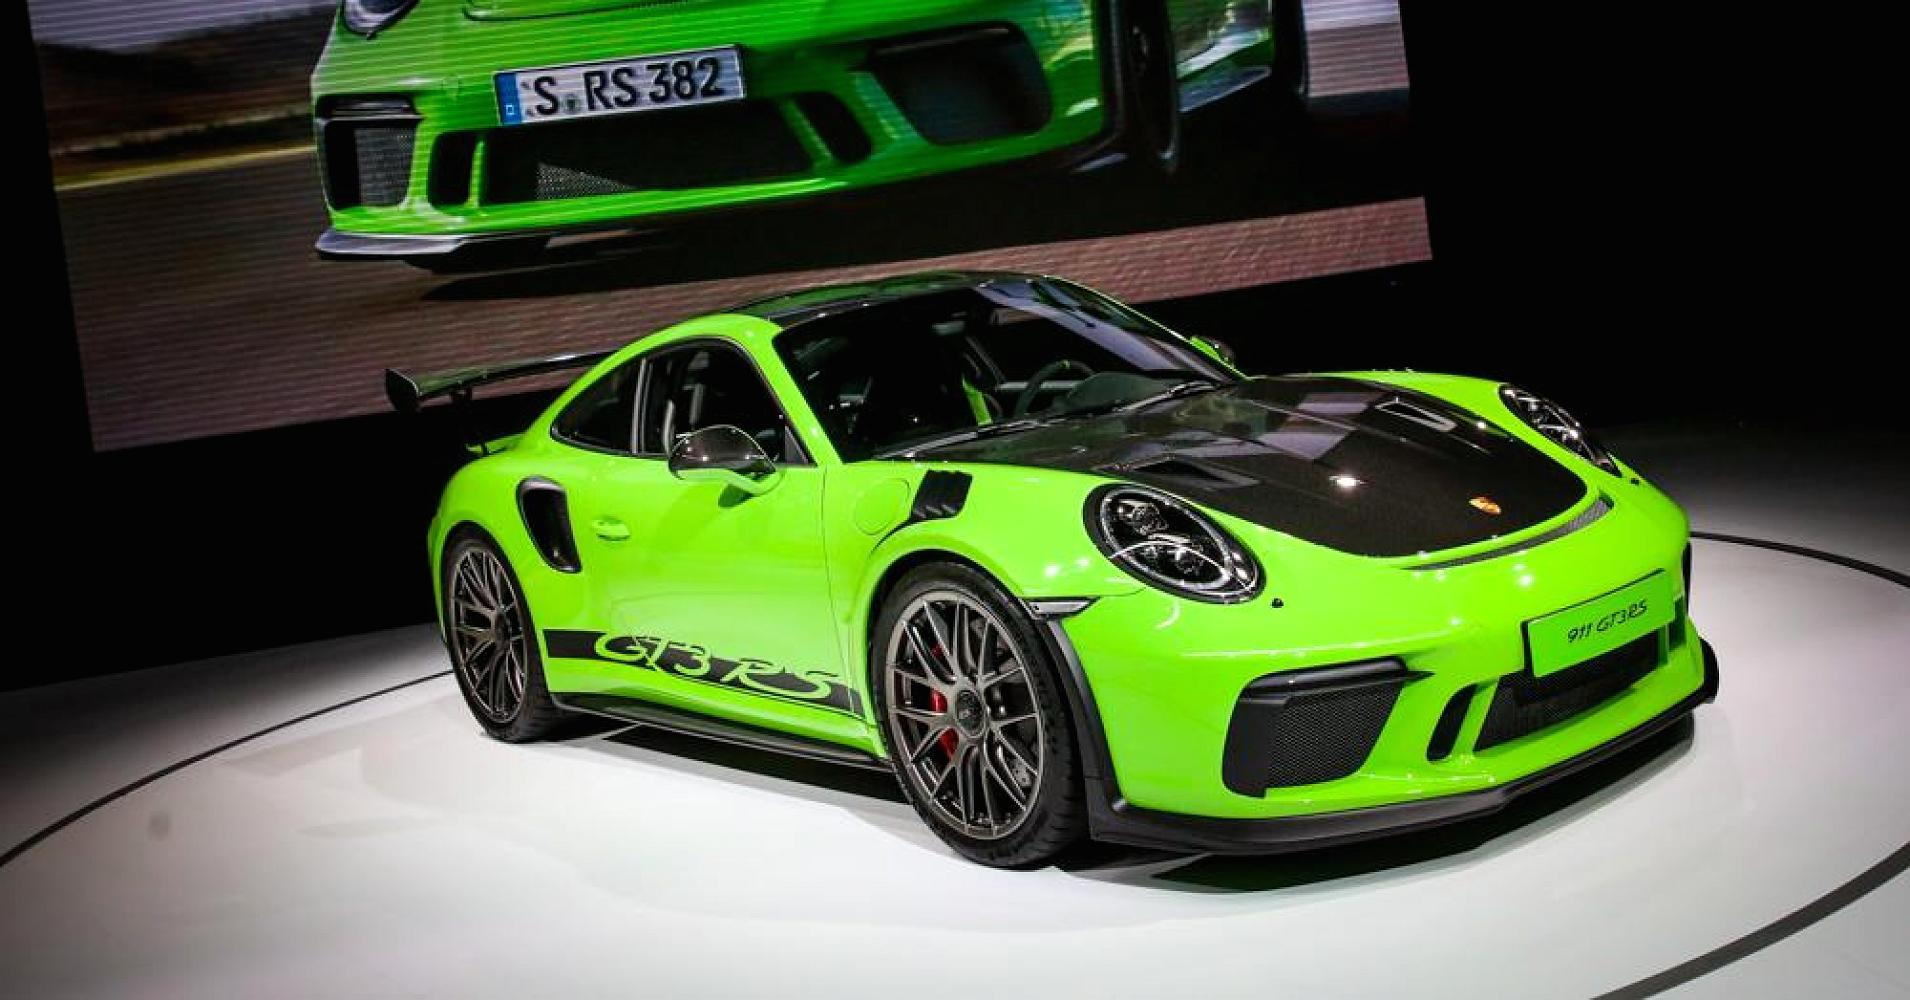 Electric concept cars, beefed-up SUVs and a 'lizard green' Porsche debut at New York Auto Show